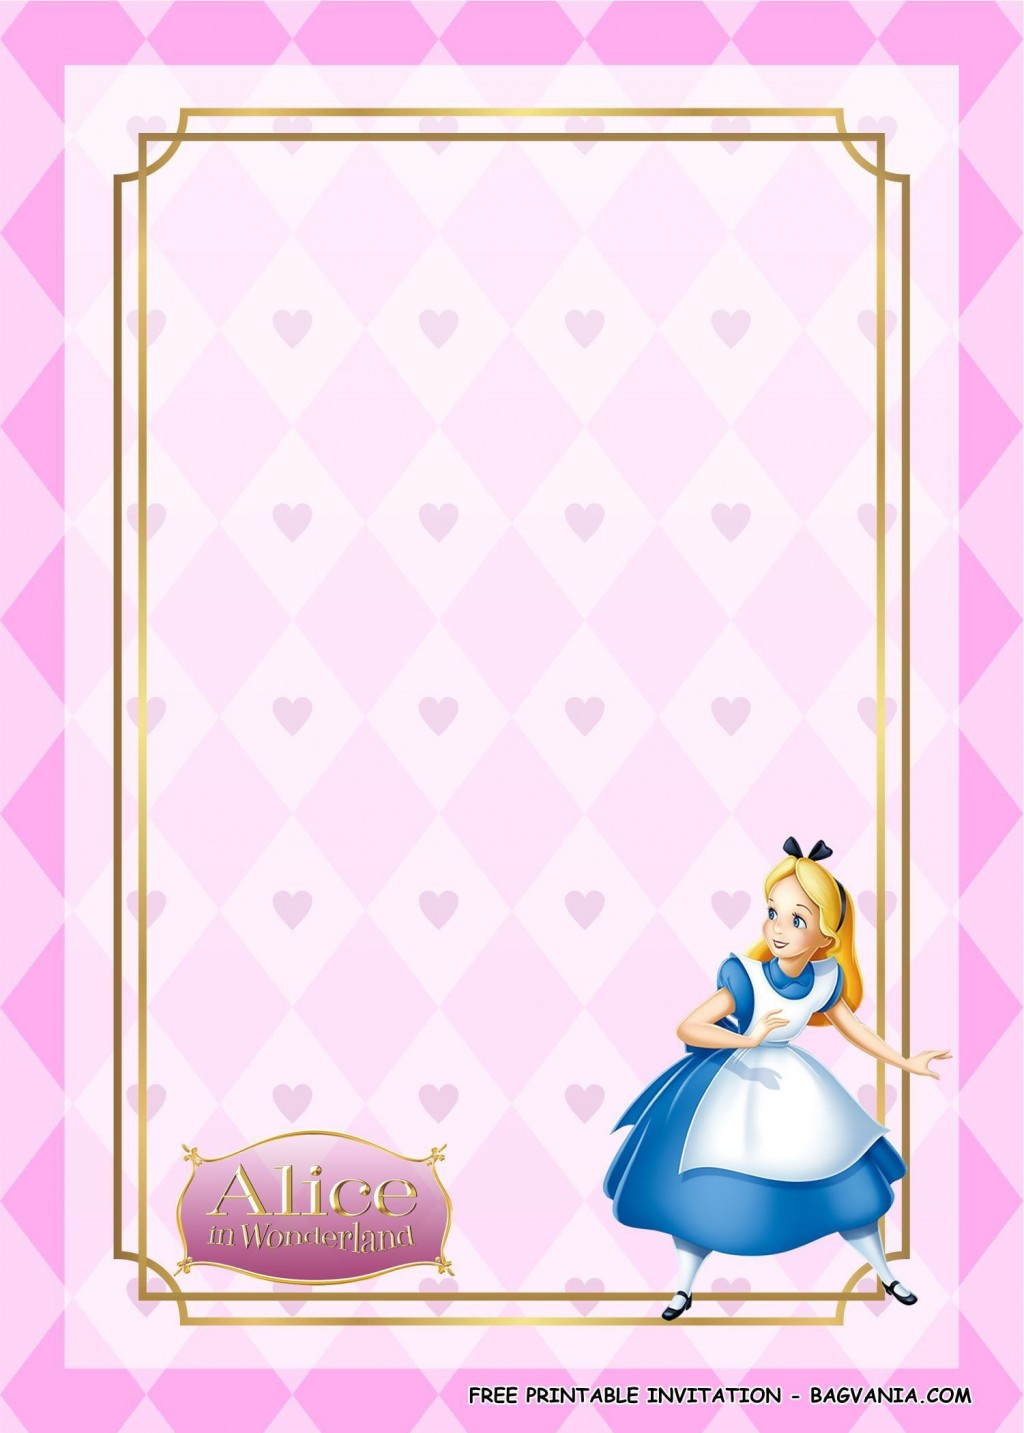 006 Remarkable Alice In Wonderland Party Template High Def  Templates Invitation FreeLarge